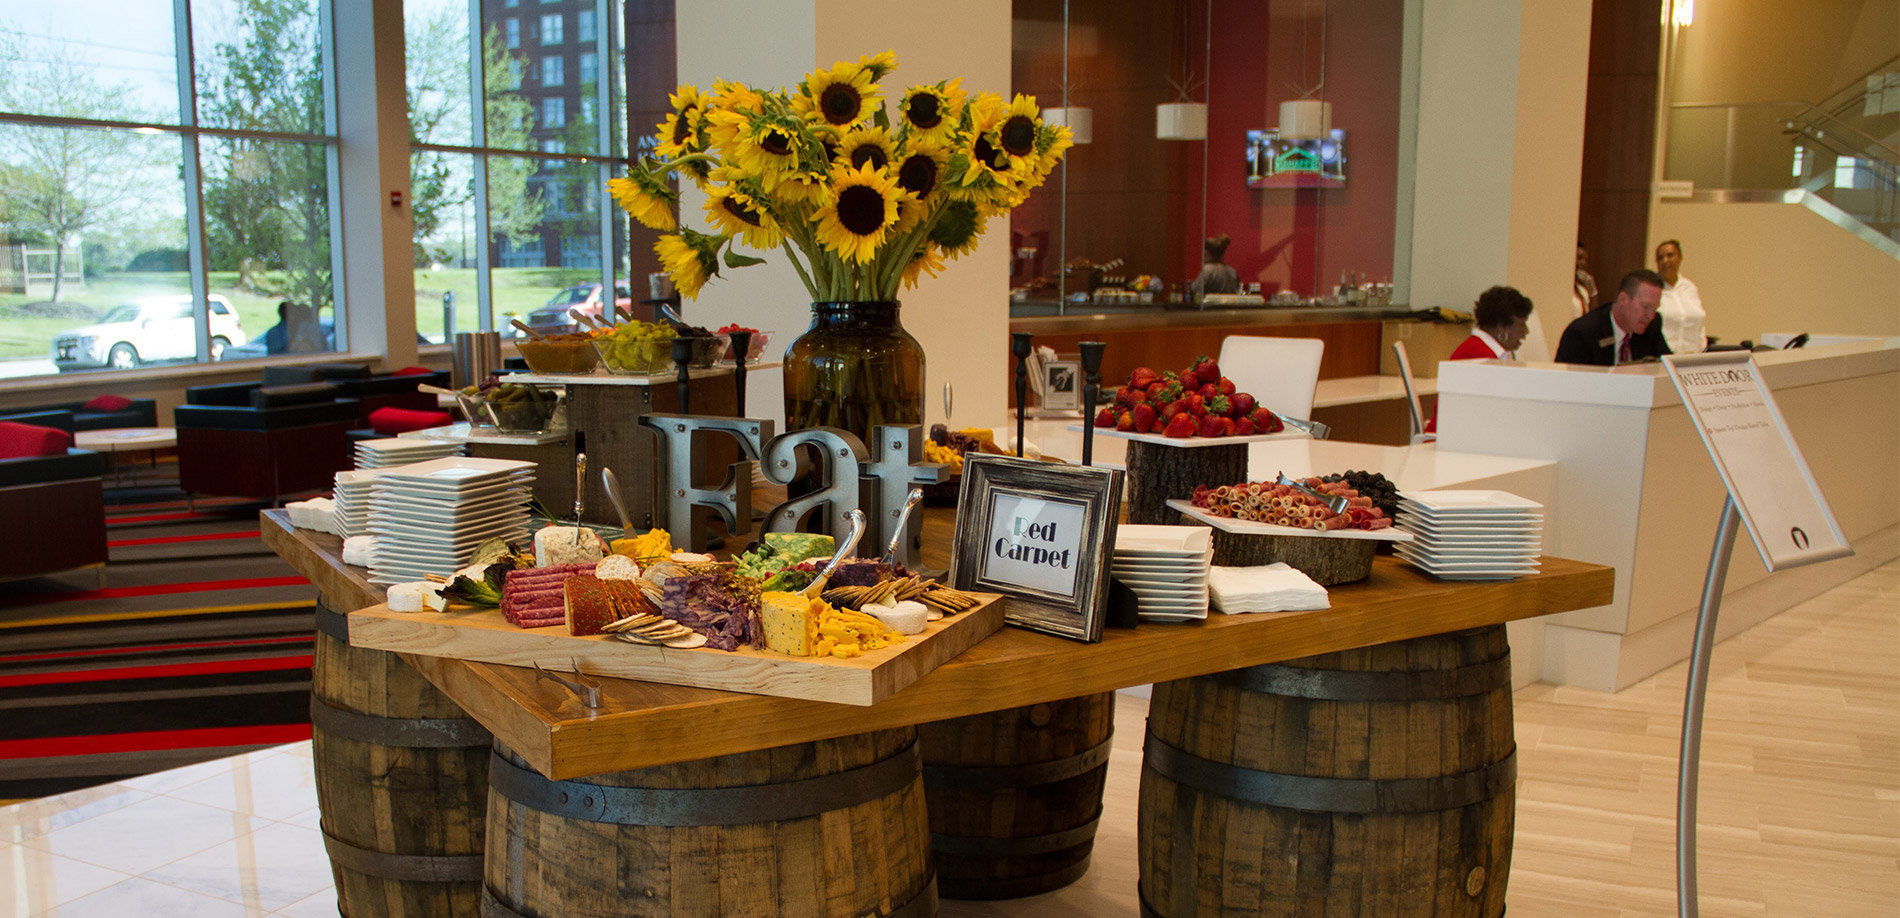 Buffet table on barrels with sunflowers